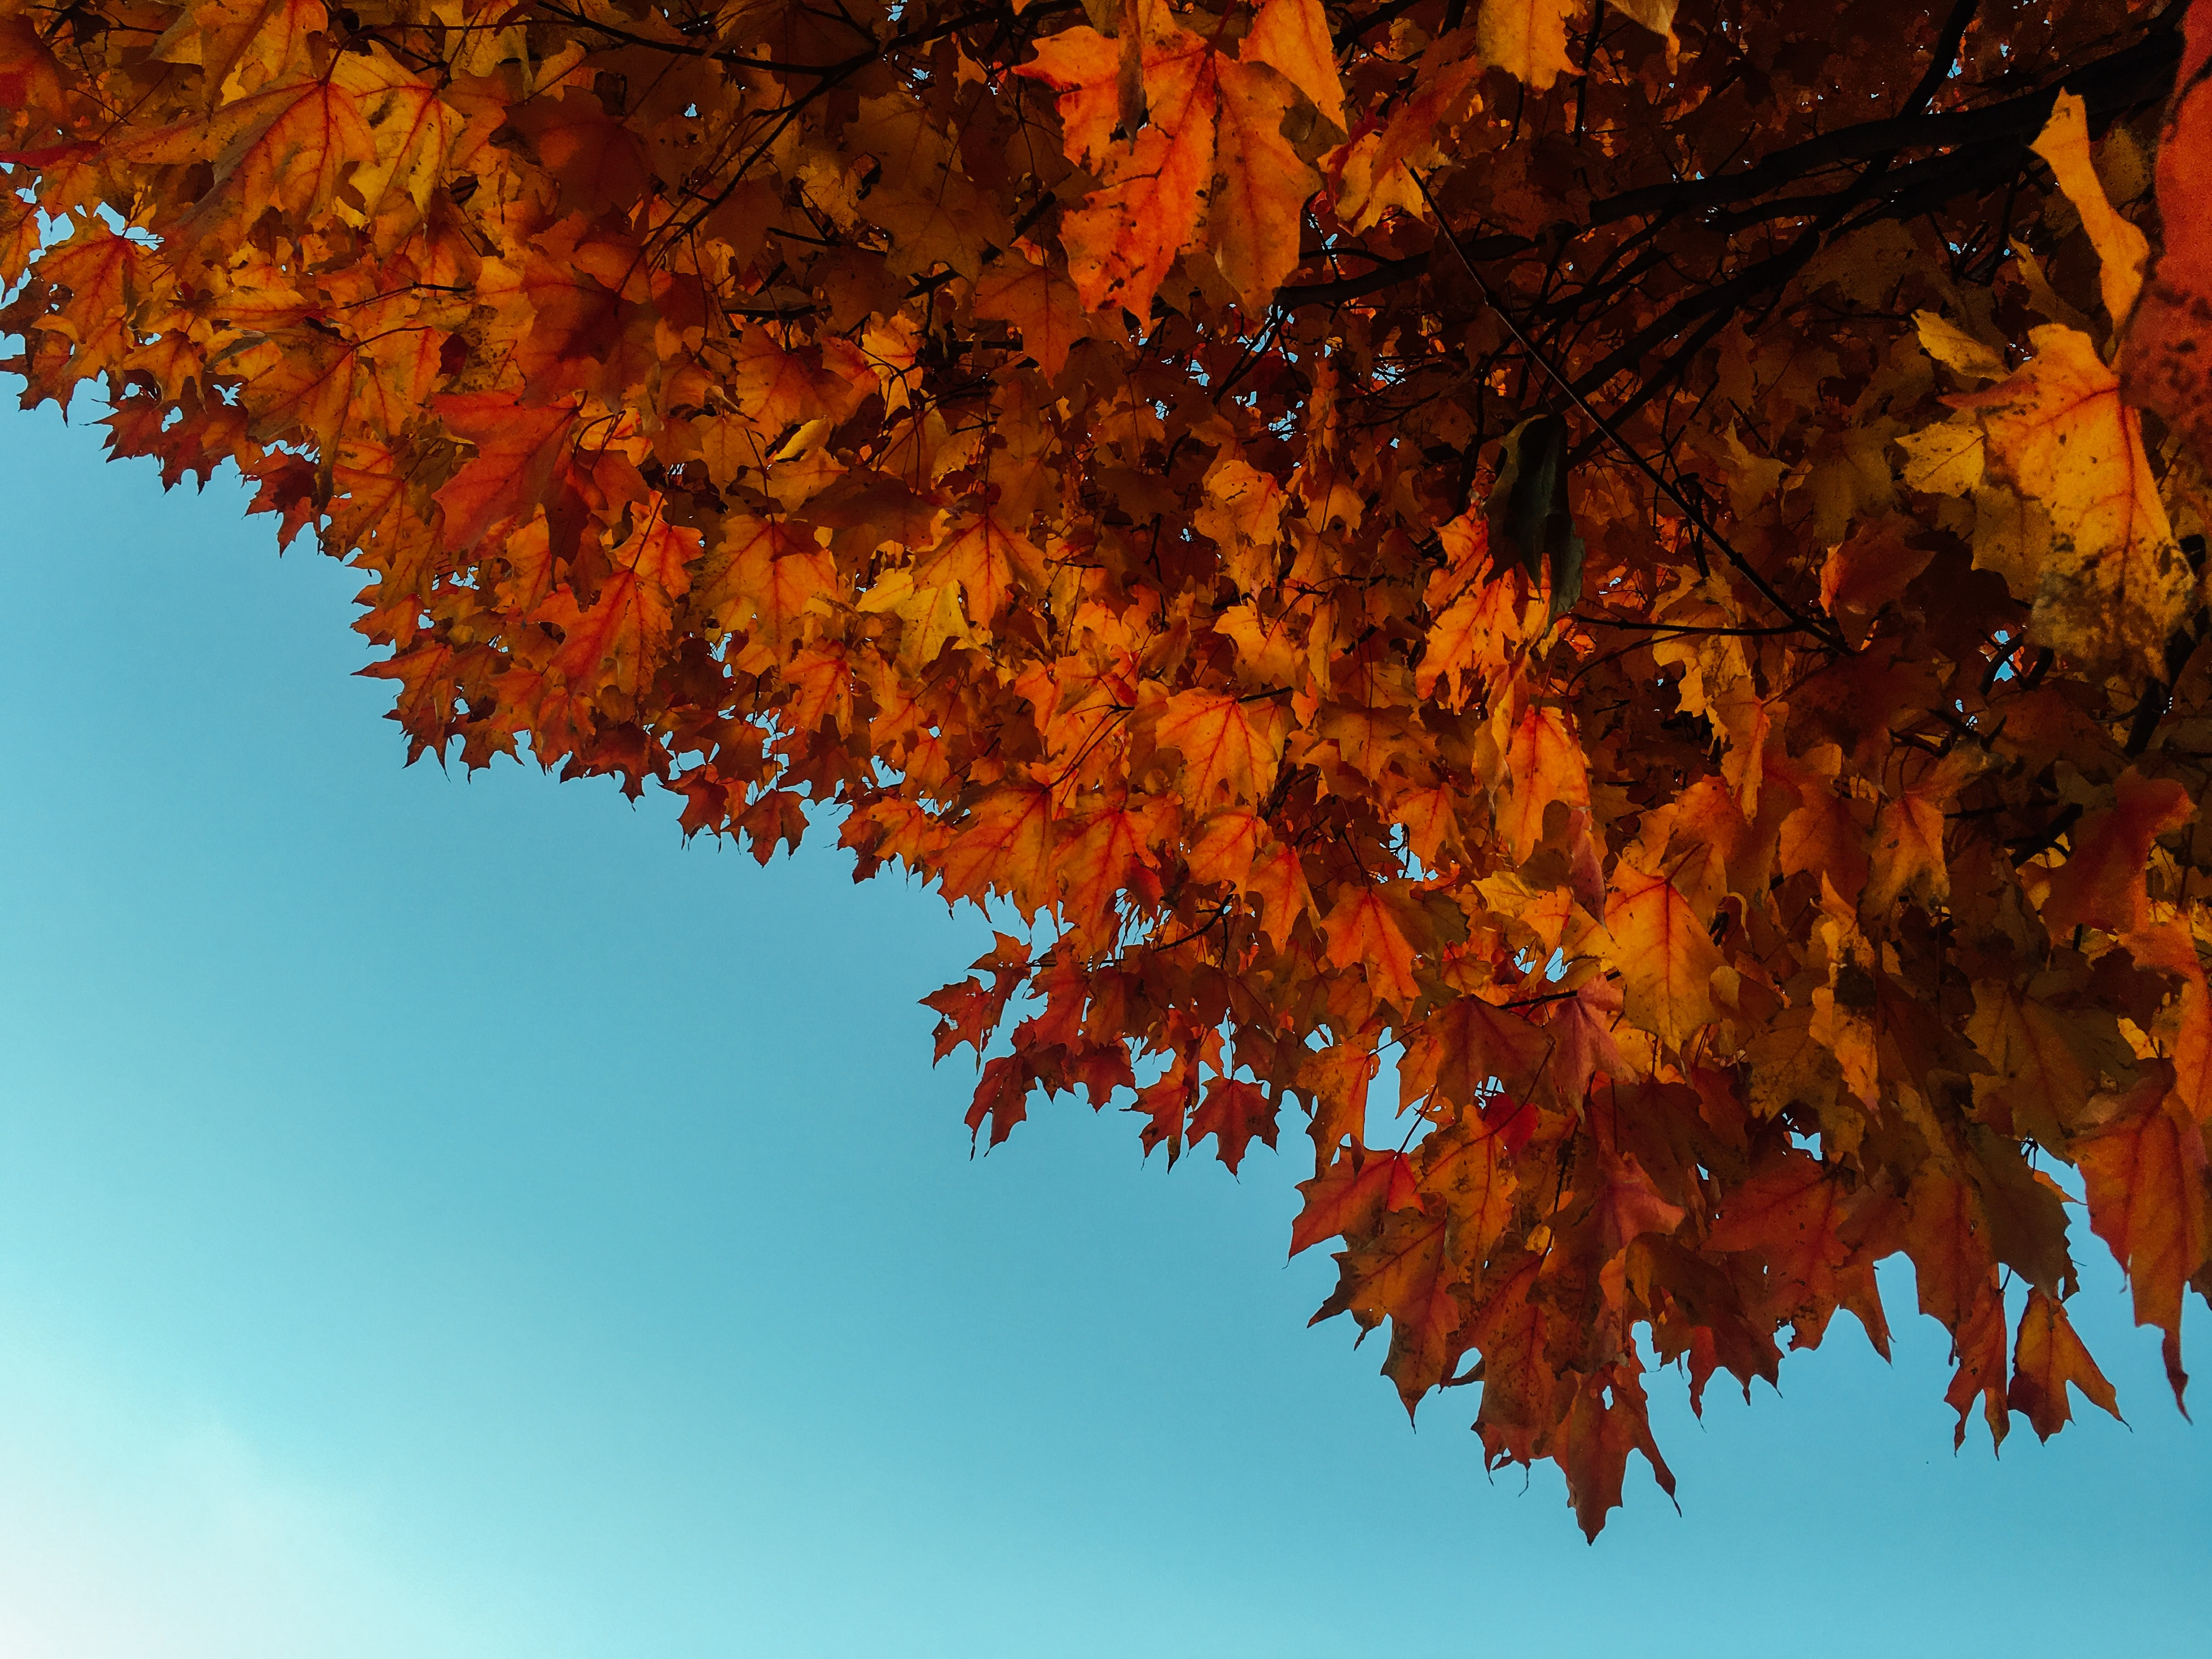 Orange maple leaves and fall foilage against the blue sky